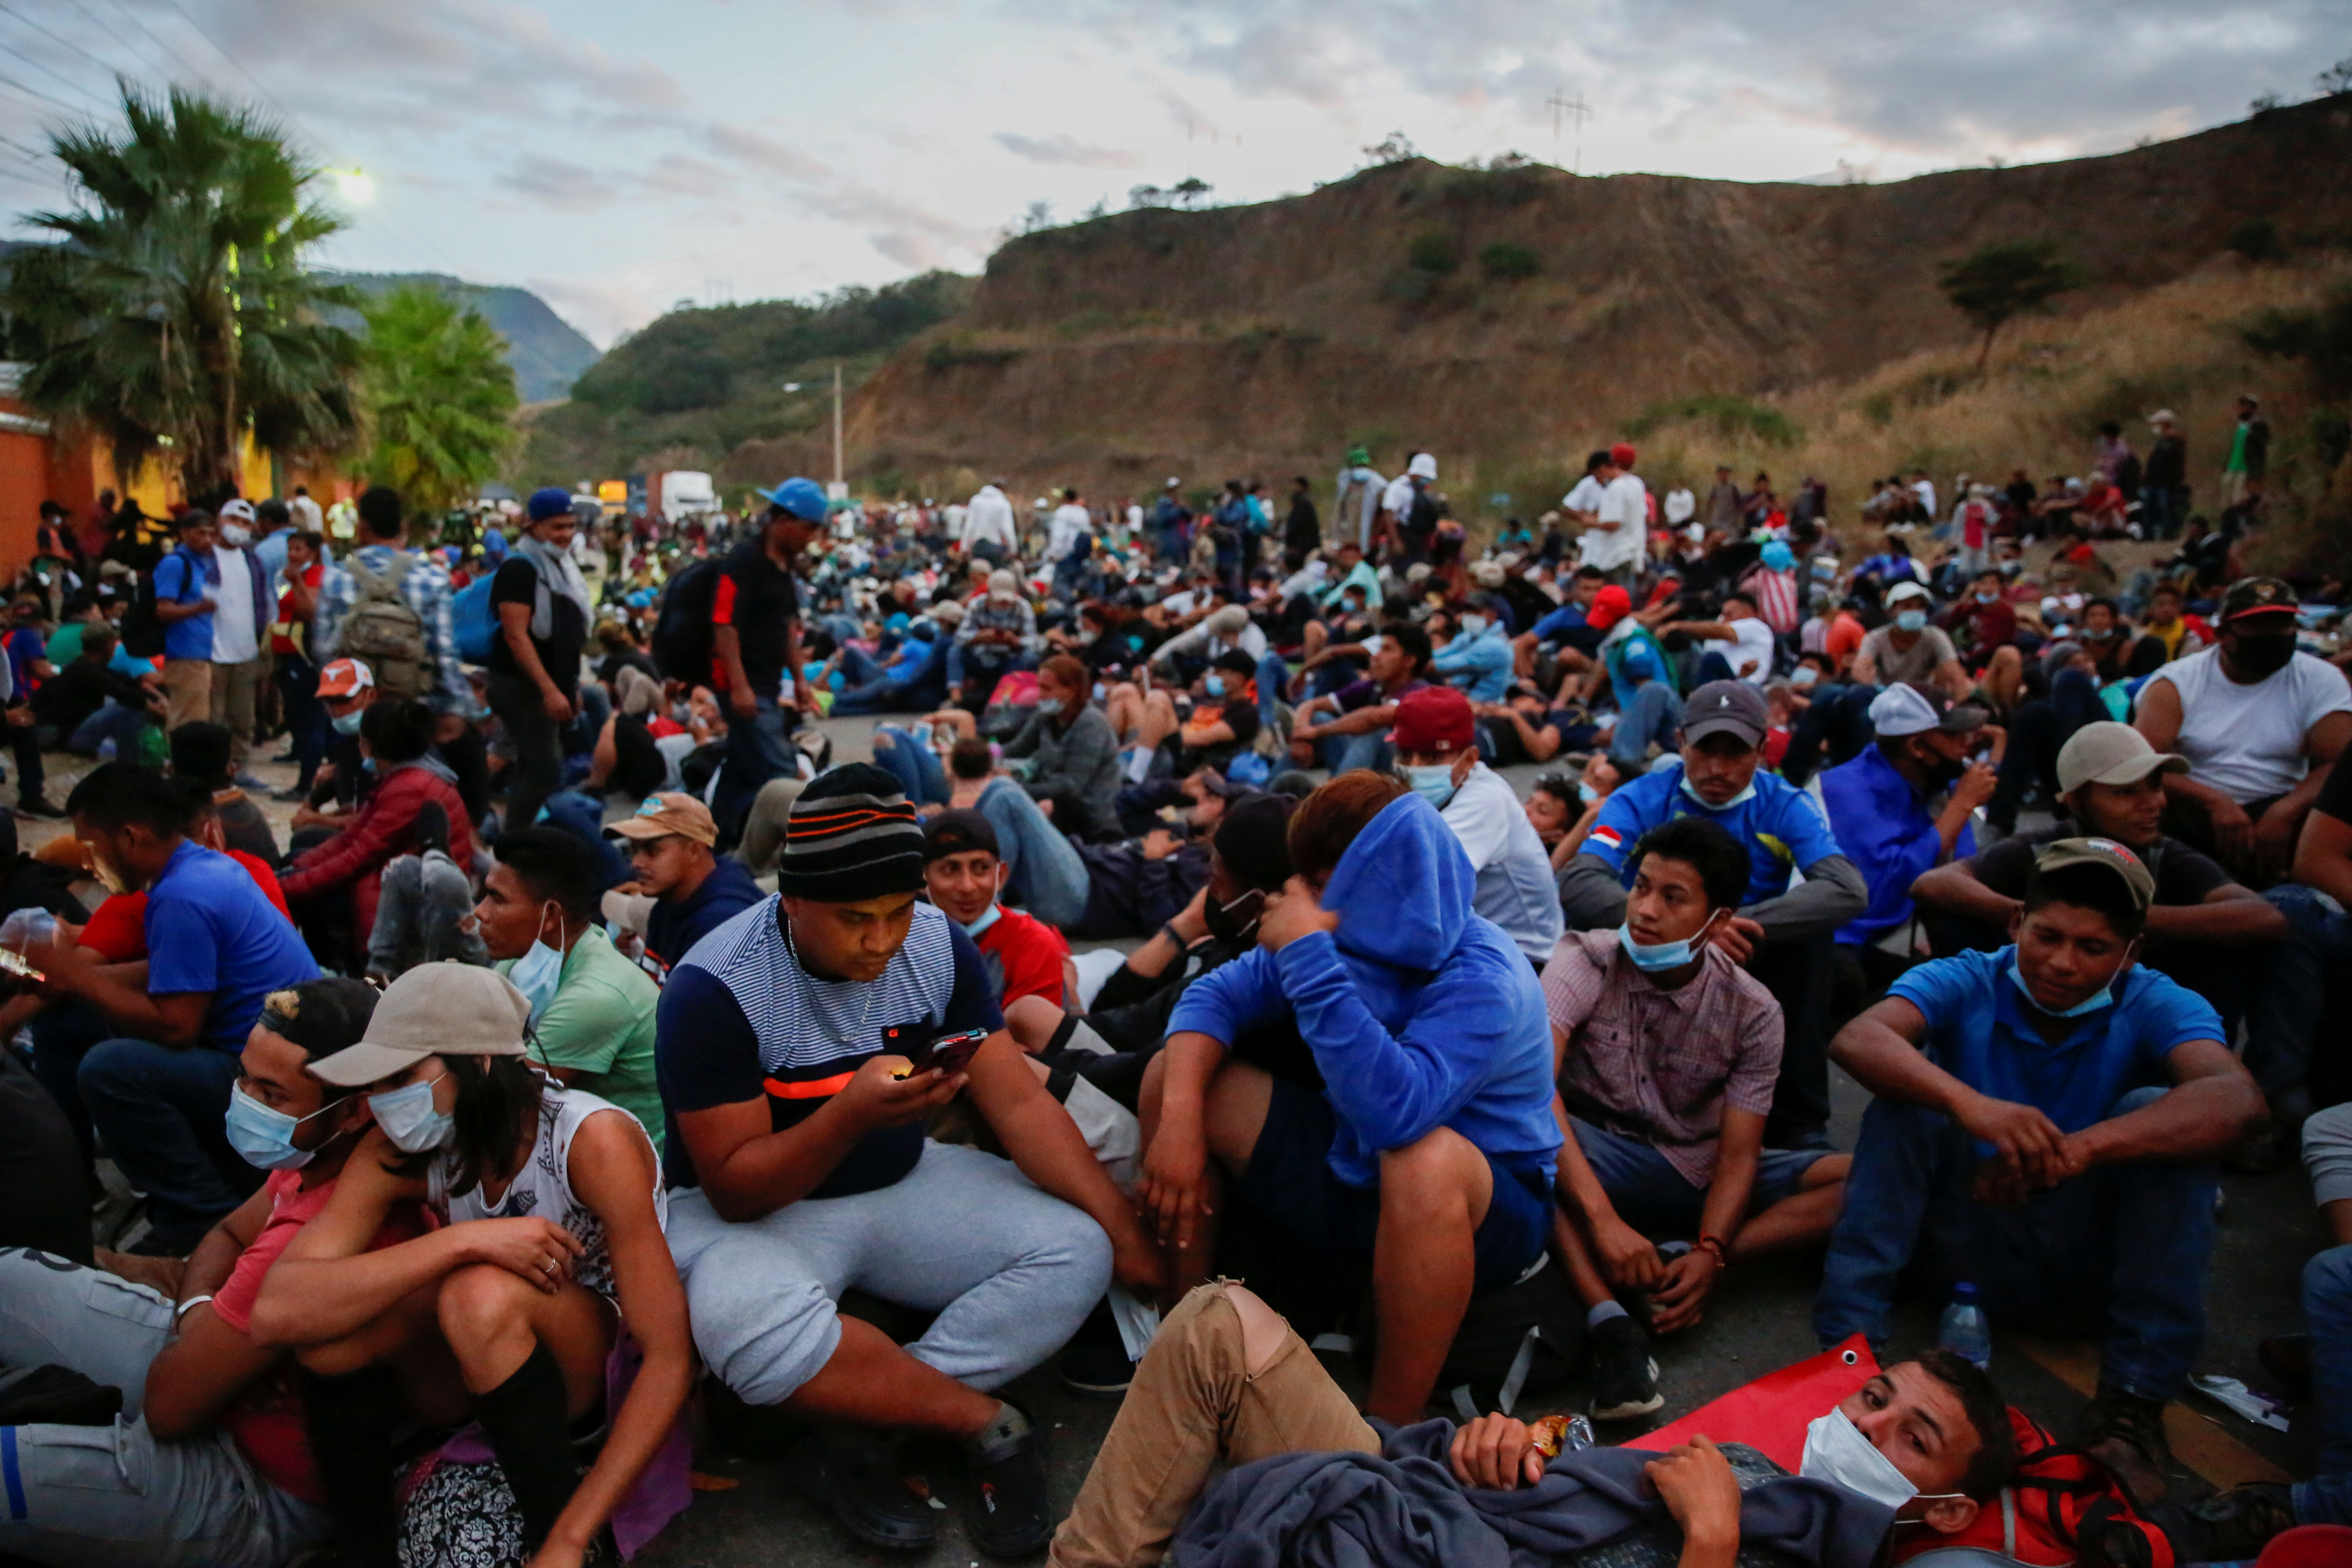 Hondurans taking part in a new caravan of migrants, set to head to the United States, rest on a road, in Vado Hondo, Guatemala January 17, 2021. REUTERS/Luis Echeverria